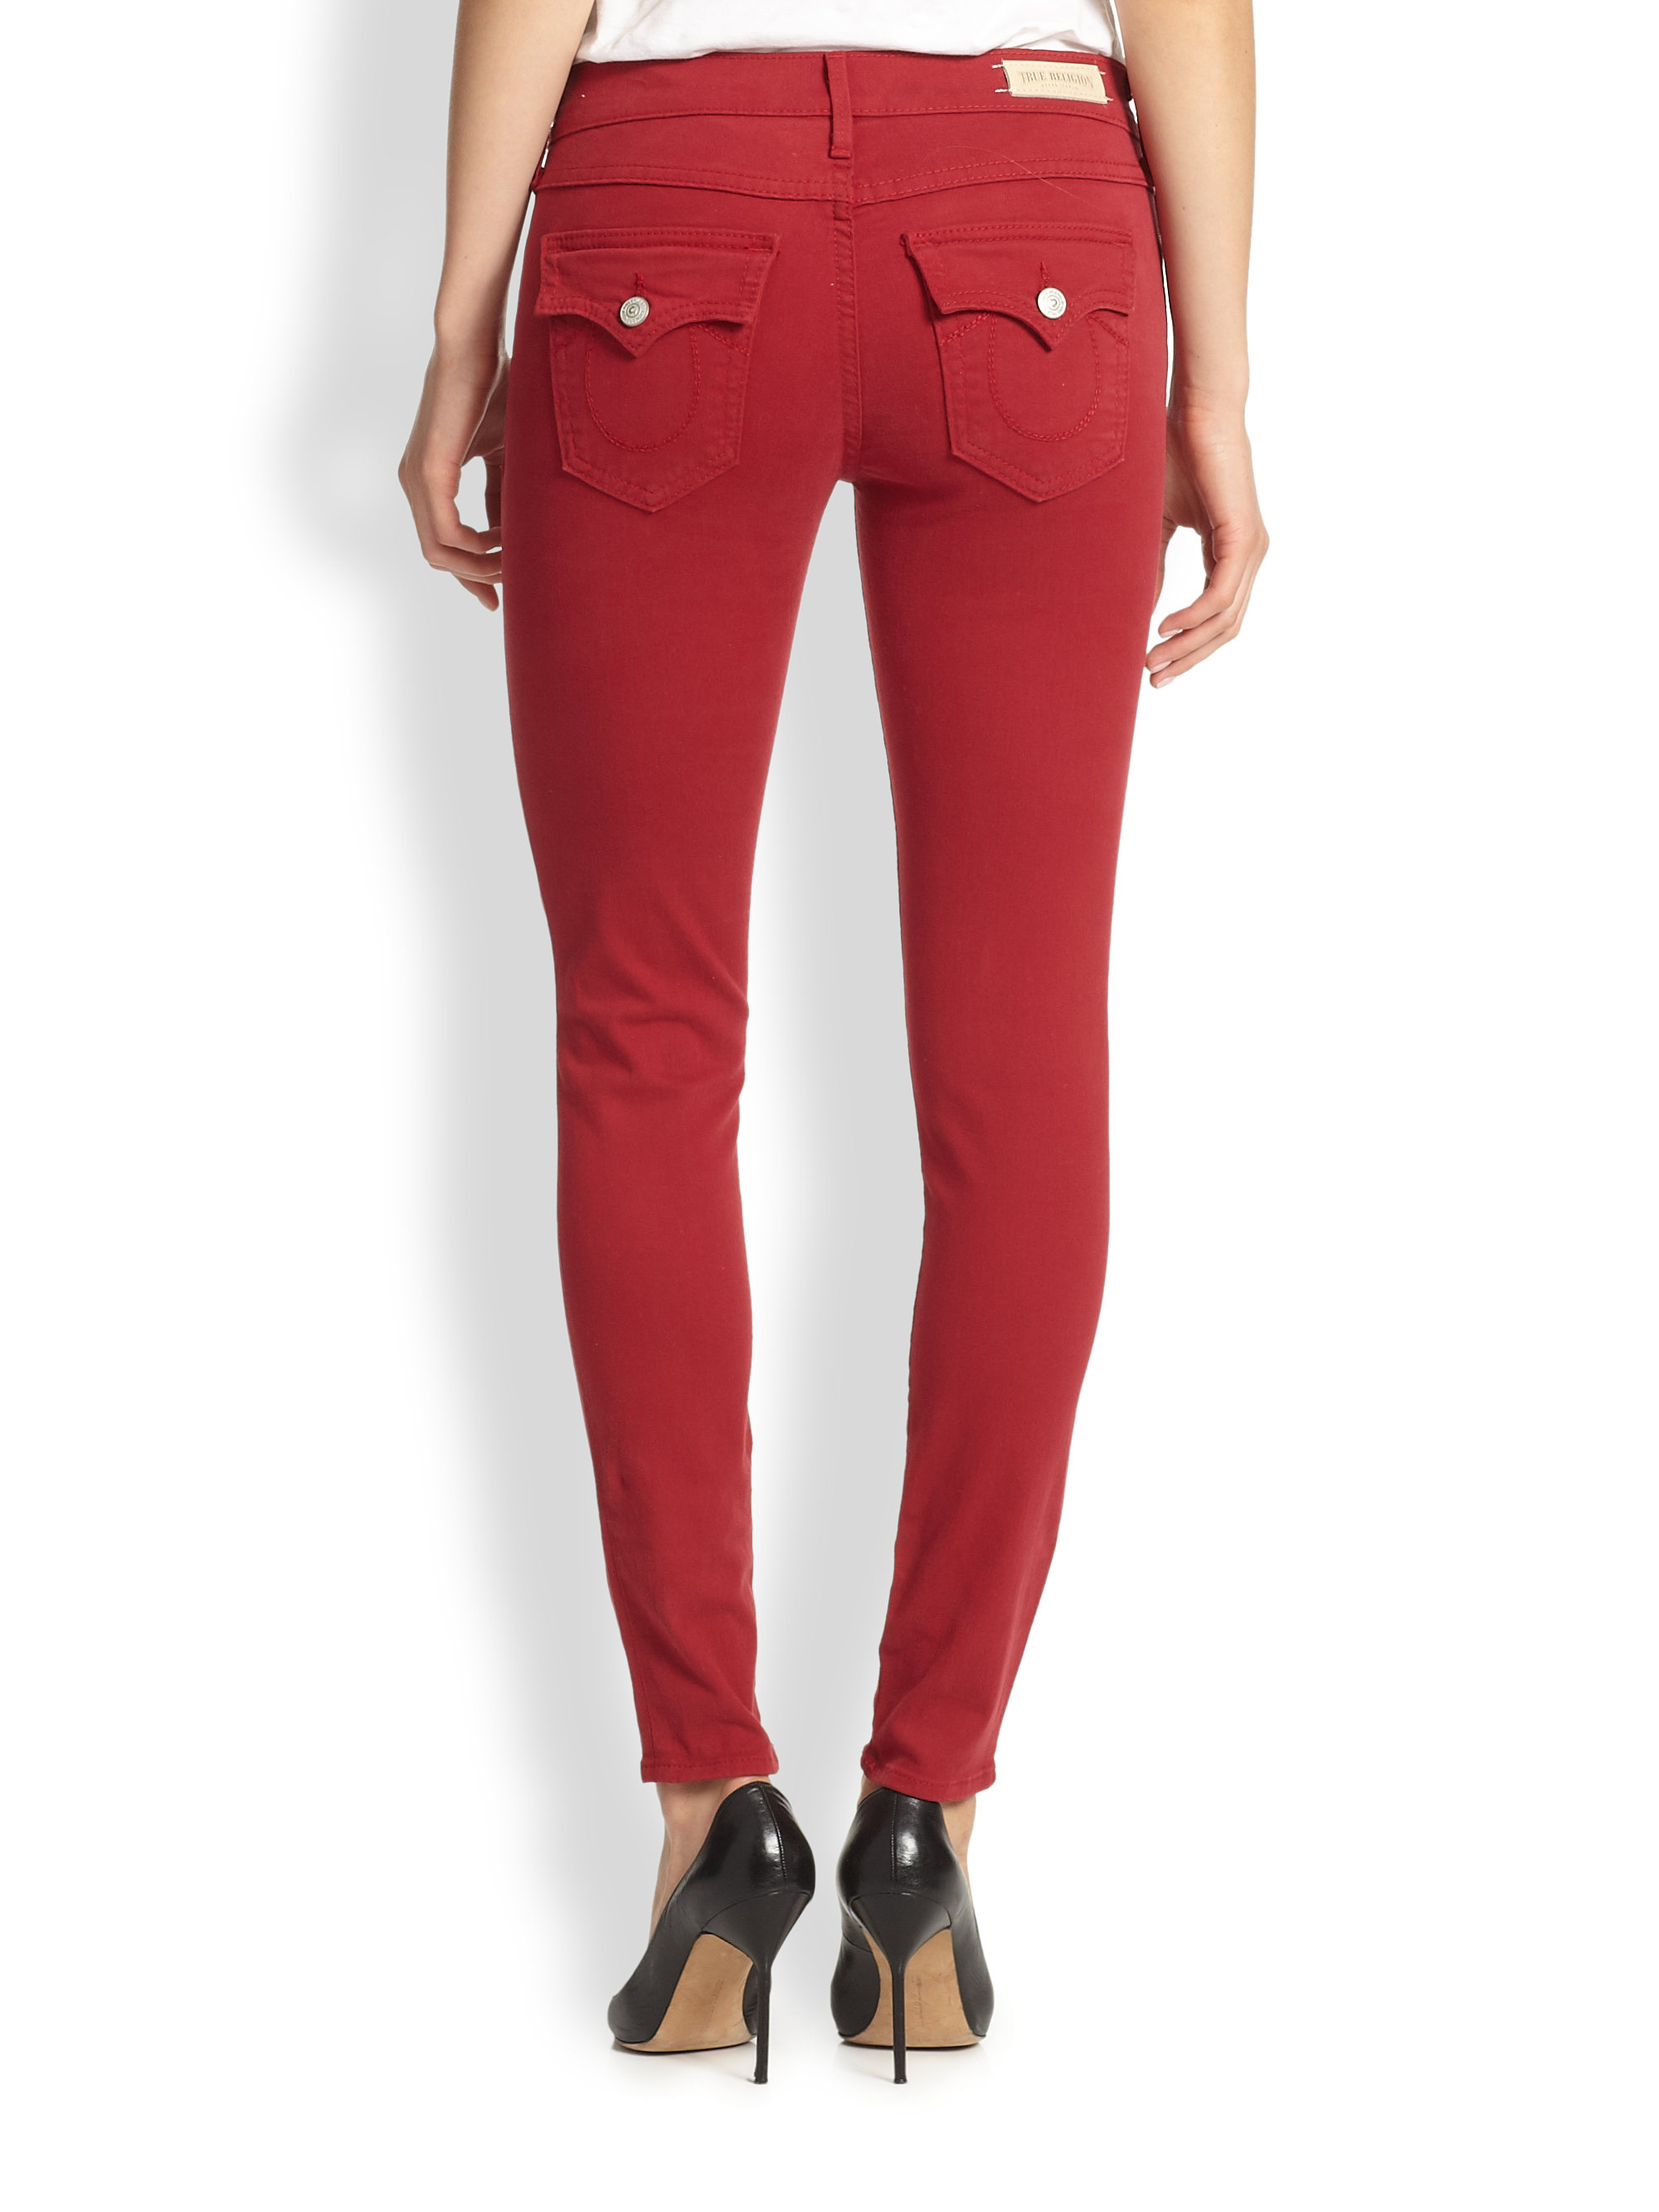 True religion Serena Super Skinny Jeans in Red | Lyst